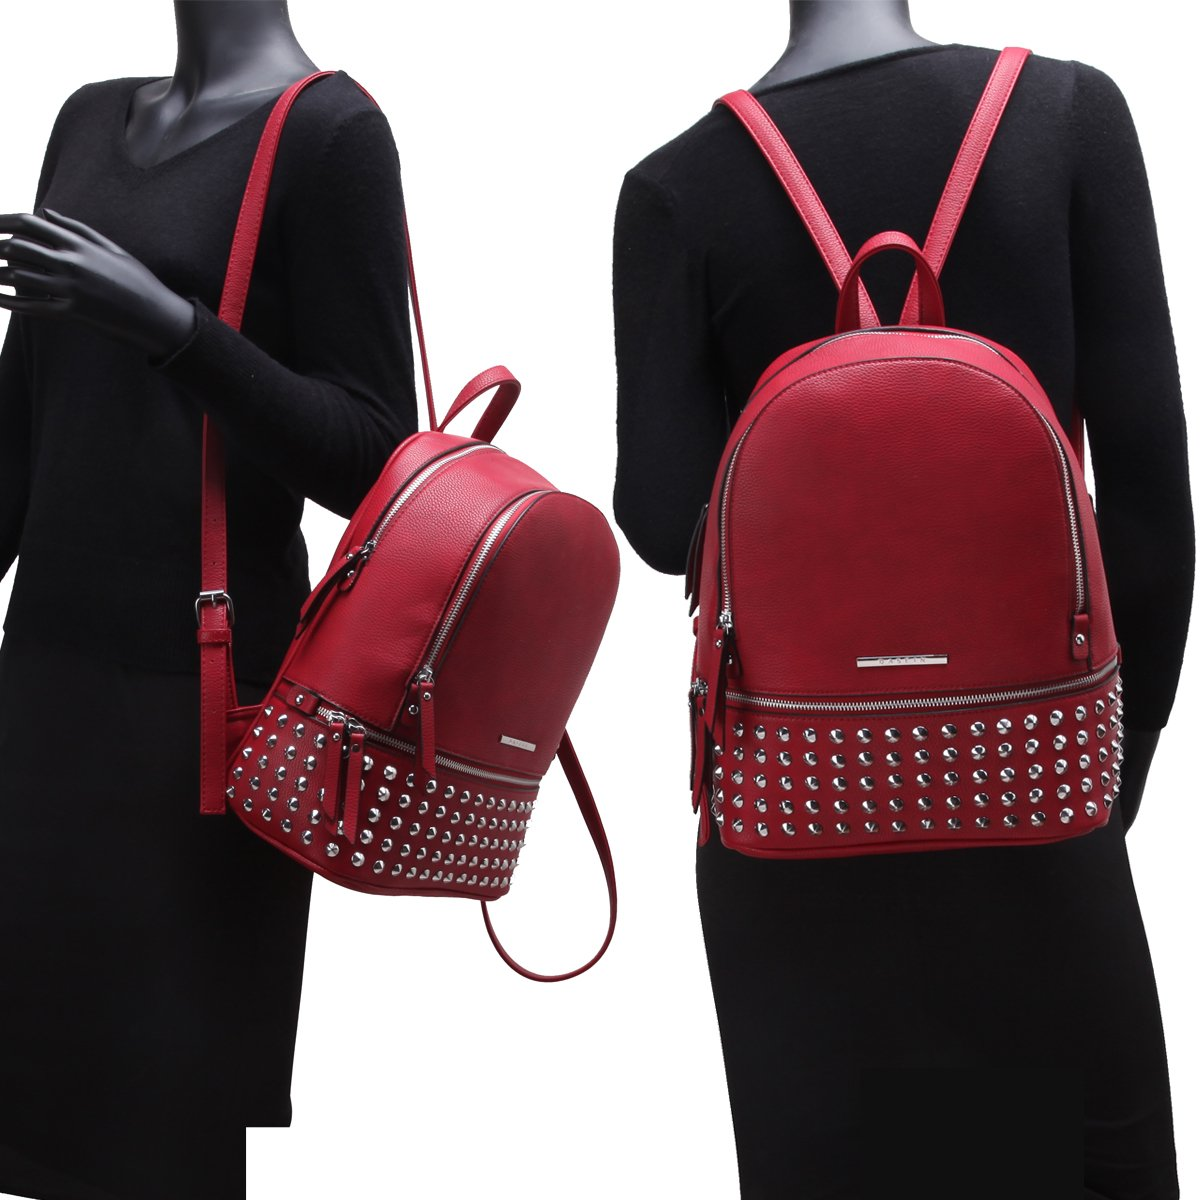 MMK collection Women Fashion Backpack with wallet (2443)~Designer Purse for Women ~Multi Pocket Backpack~ Beautiful Designer Handbag Set(2443/7025) (MA-XL-21-7580-RD 168 RD) by Marco M. Kerry (Image #9)